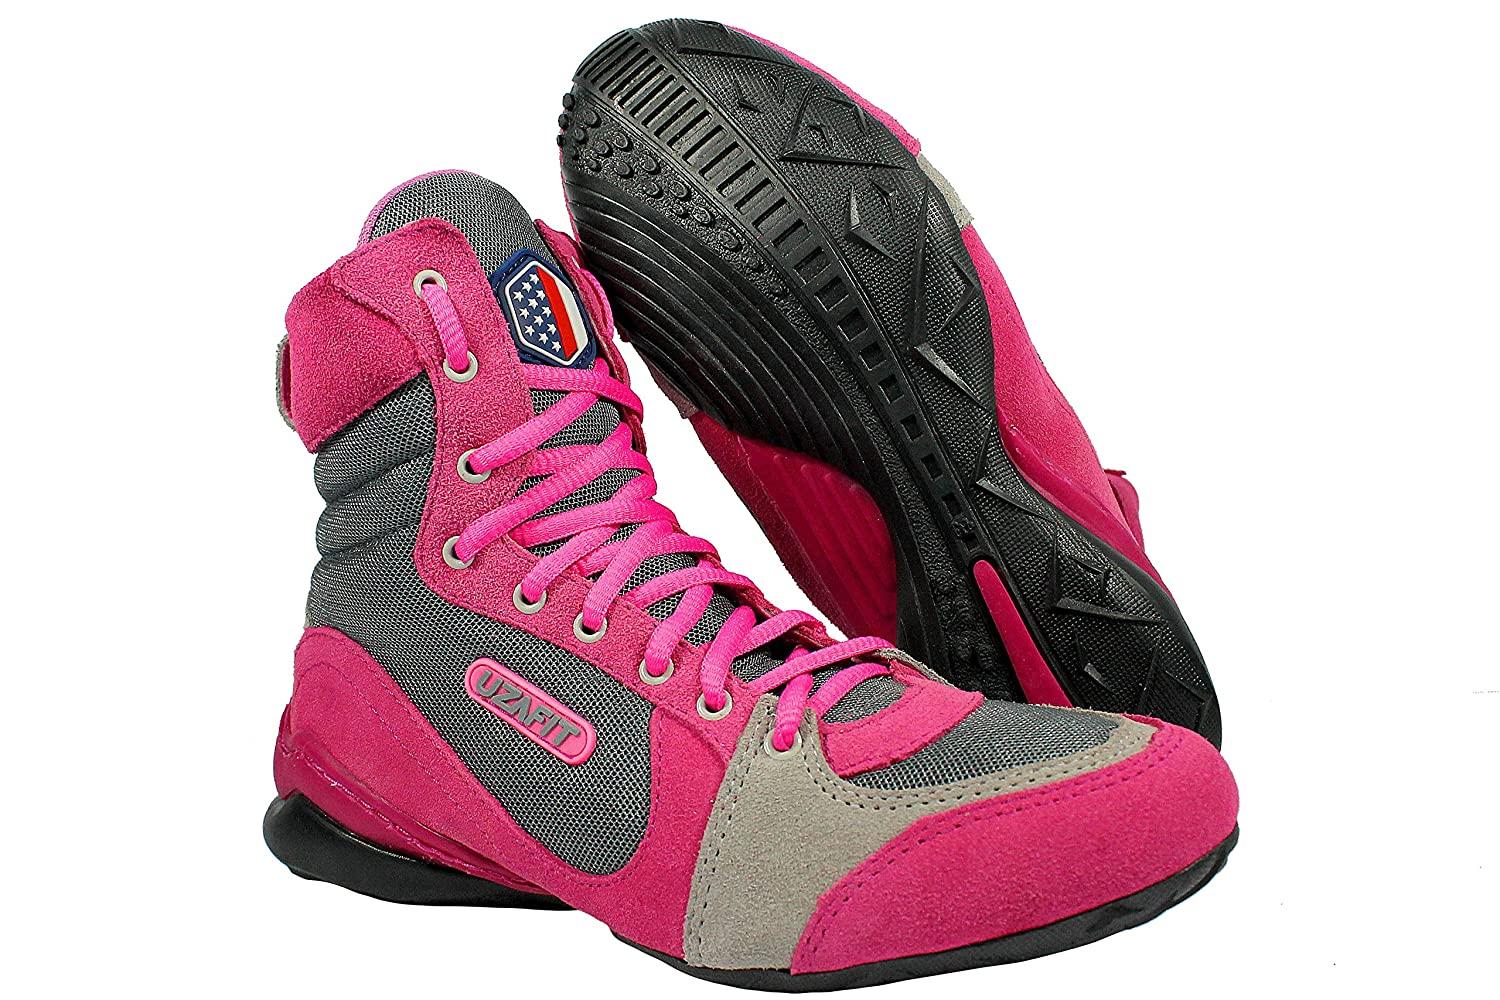 Uzafit Hollywood Bodybuilding Weightlifting CrossFit Boxing Shoe Sneaker  Hot Pink and Grey: Amazon.ca: Shoes & Handbags